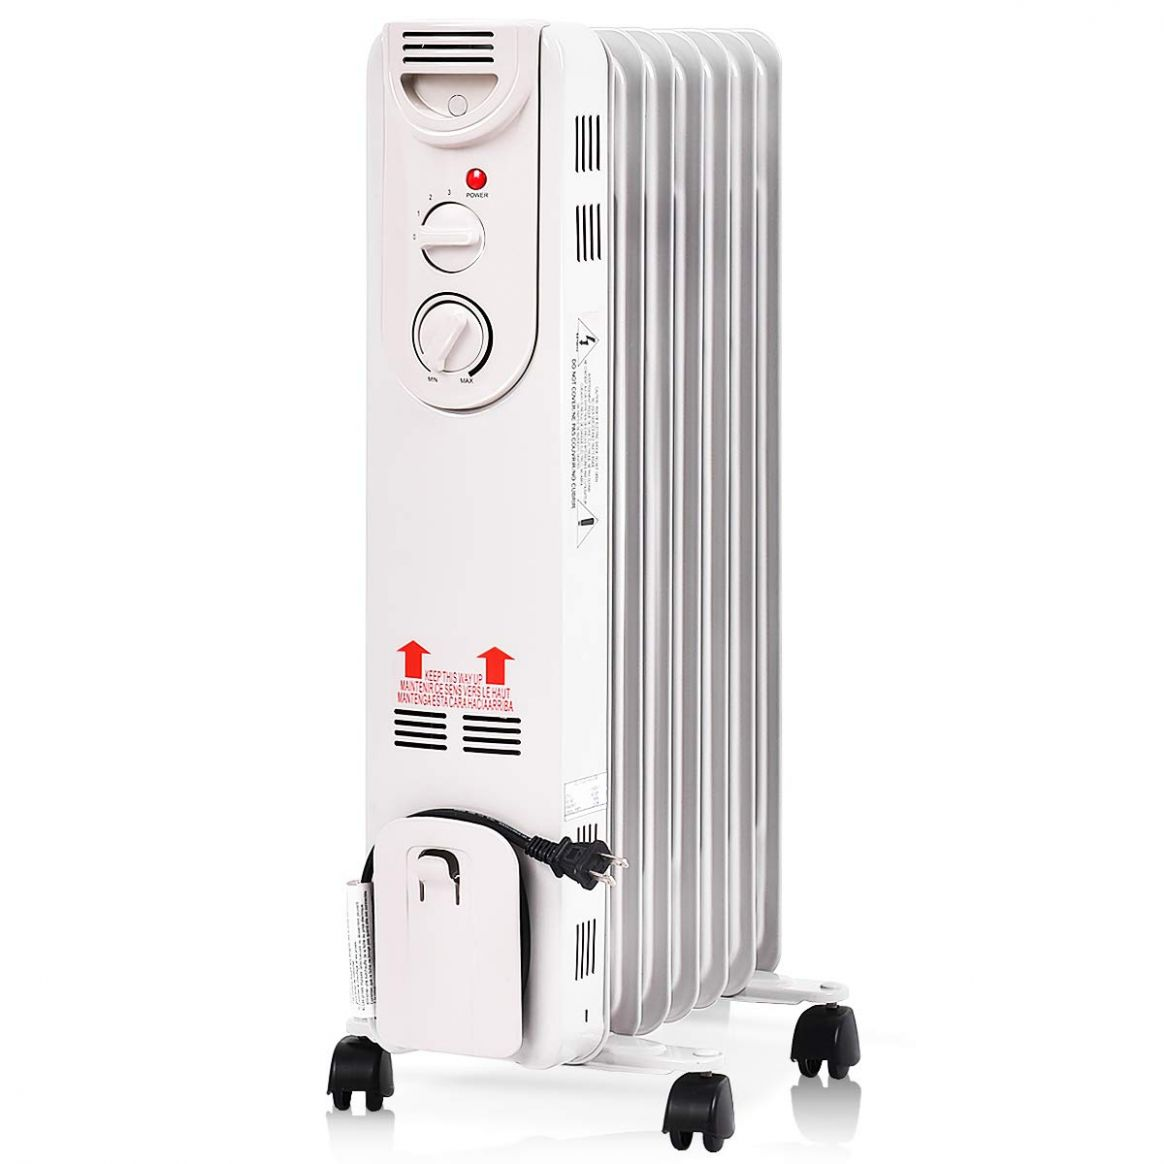 The 8 Safest And Best Space Heater For Nursery, Baby Room